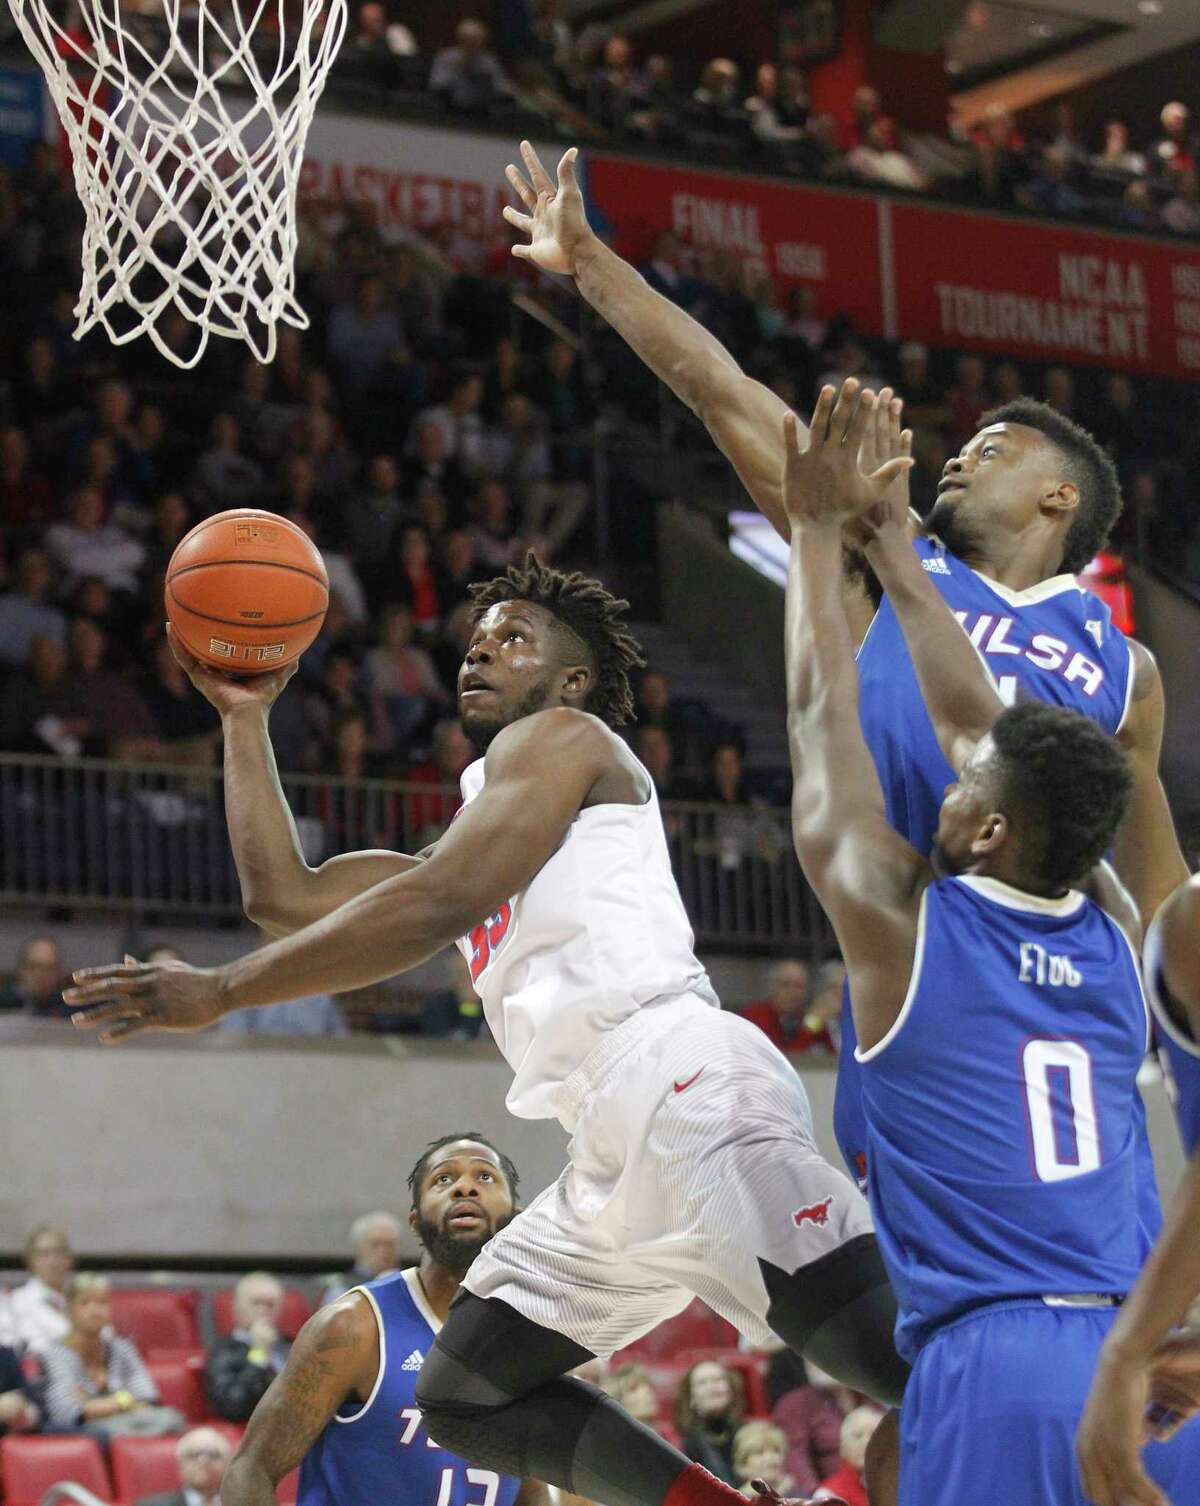 SMU forward Semi Ojeleye, left, puts up a shot while being pressured by Tulsa forwards Martins Igbanu (1) and Junior Etou (0) during the first half of an NCAA college basketball game, Thursday, March 2, 2017, in Dallas.